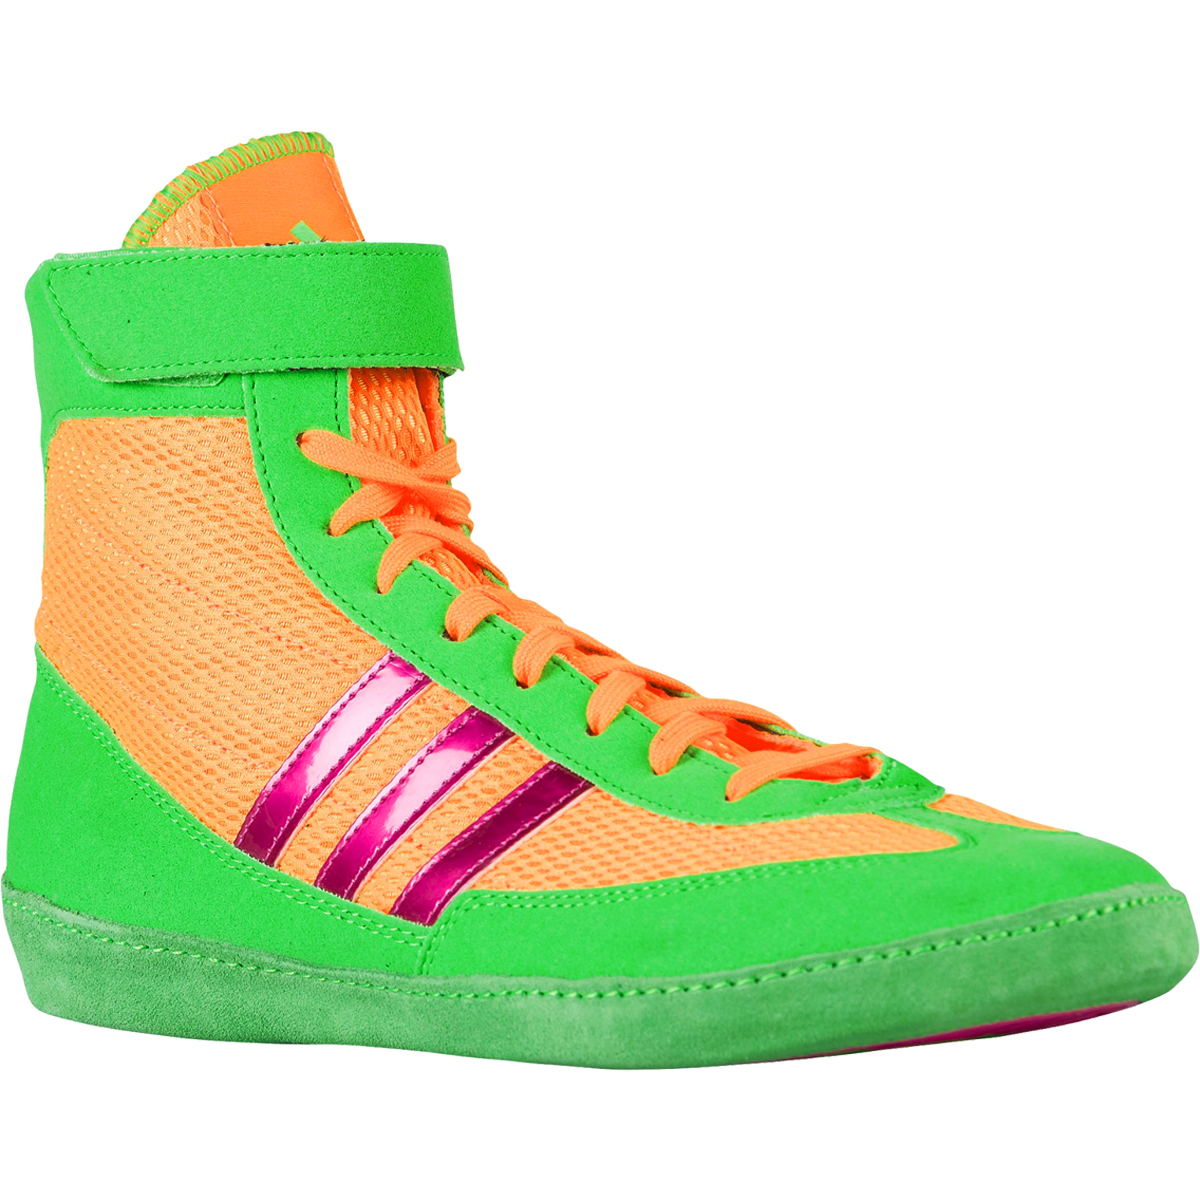 new product e3a3c 99431 9f7f9 5684c  ebay adidas combat speed 4 wrestling shoes 10 solar gold solar  lime metallic pink f386b 77cd5